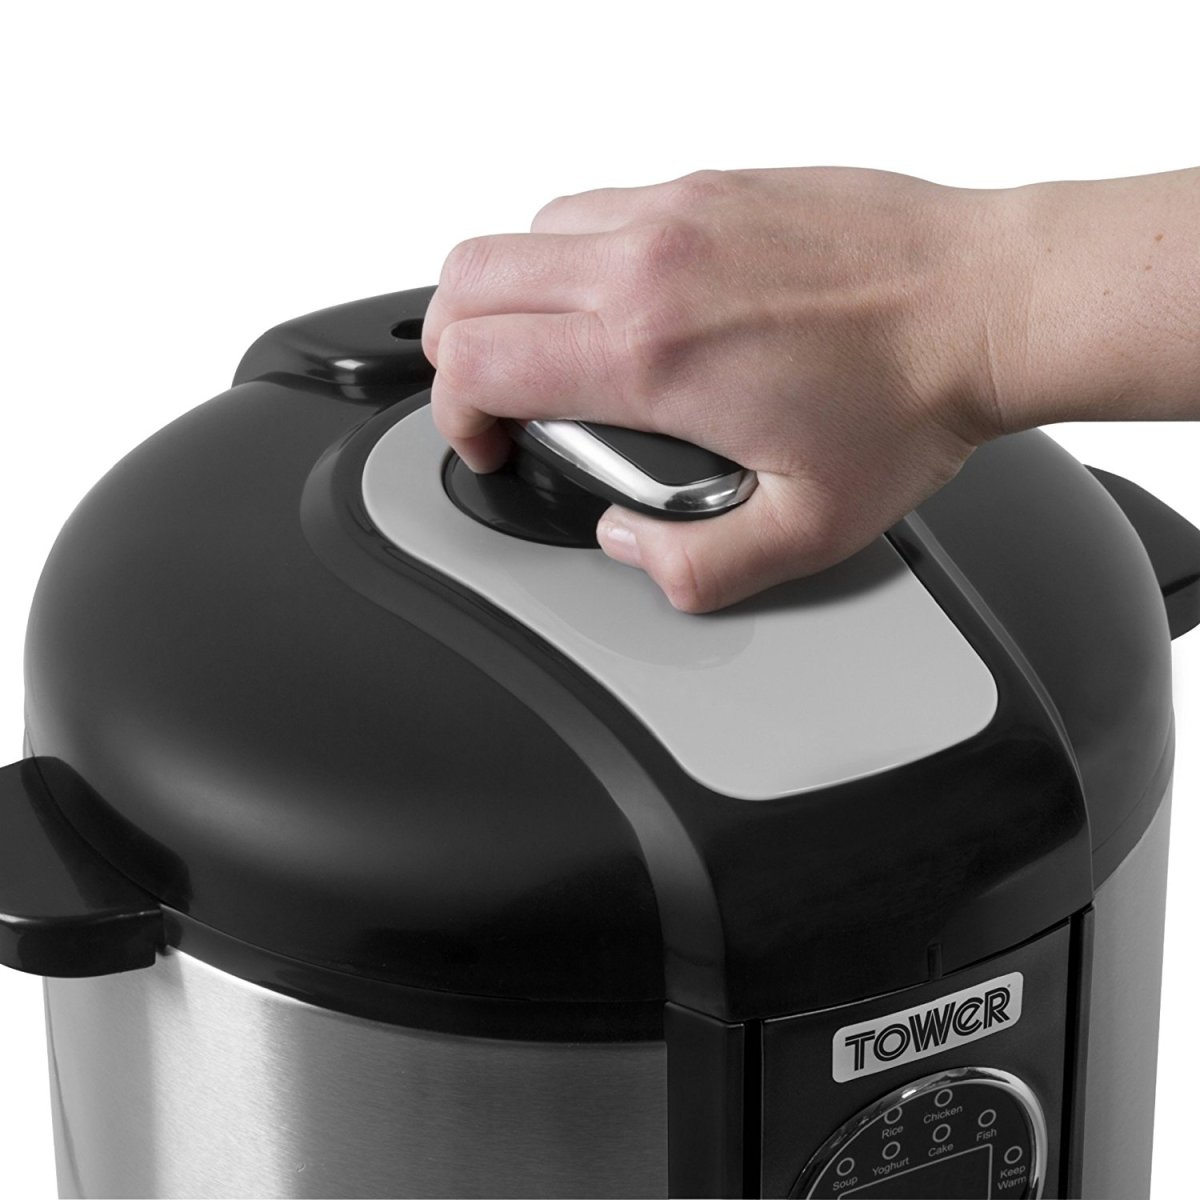 Tower Electric Pressure Cooker Review - T16008 with Smoker